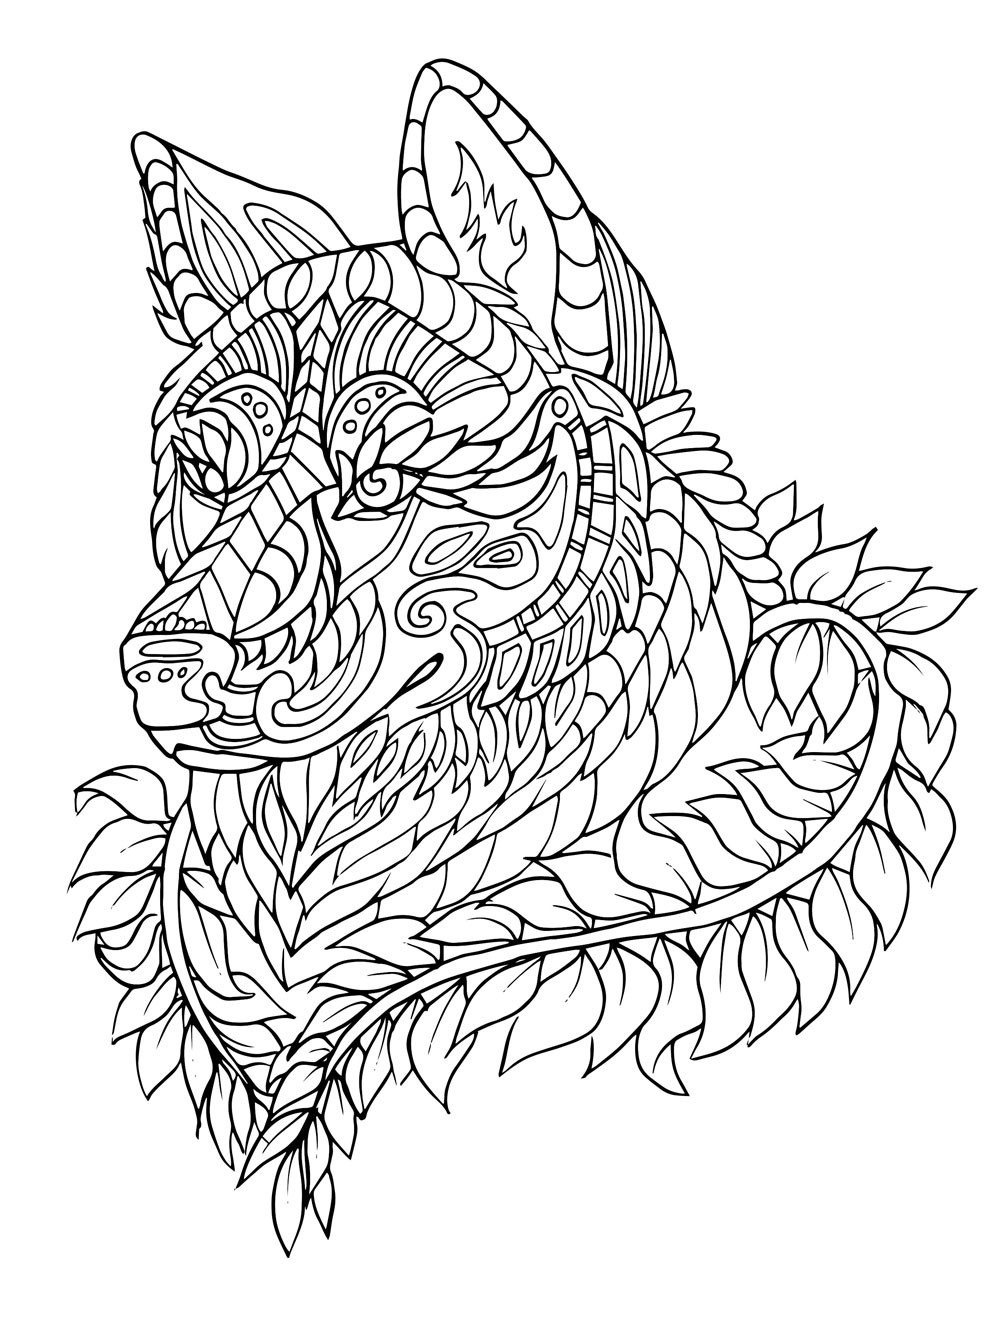 Free Printable Coloring Sheets Stress Relief  Stress Relief Coloring Pages Animals Free